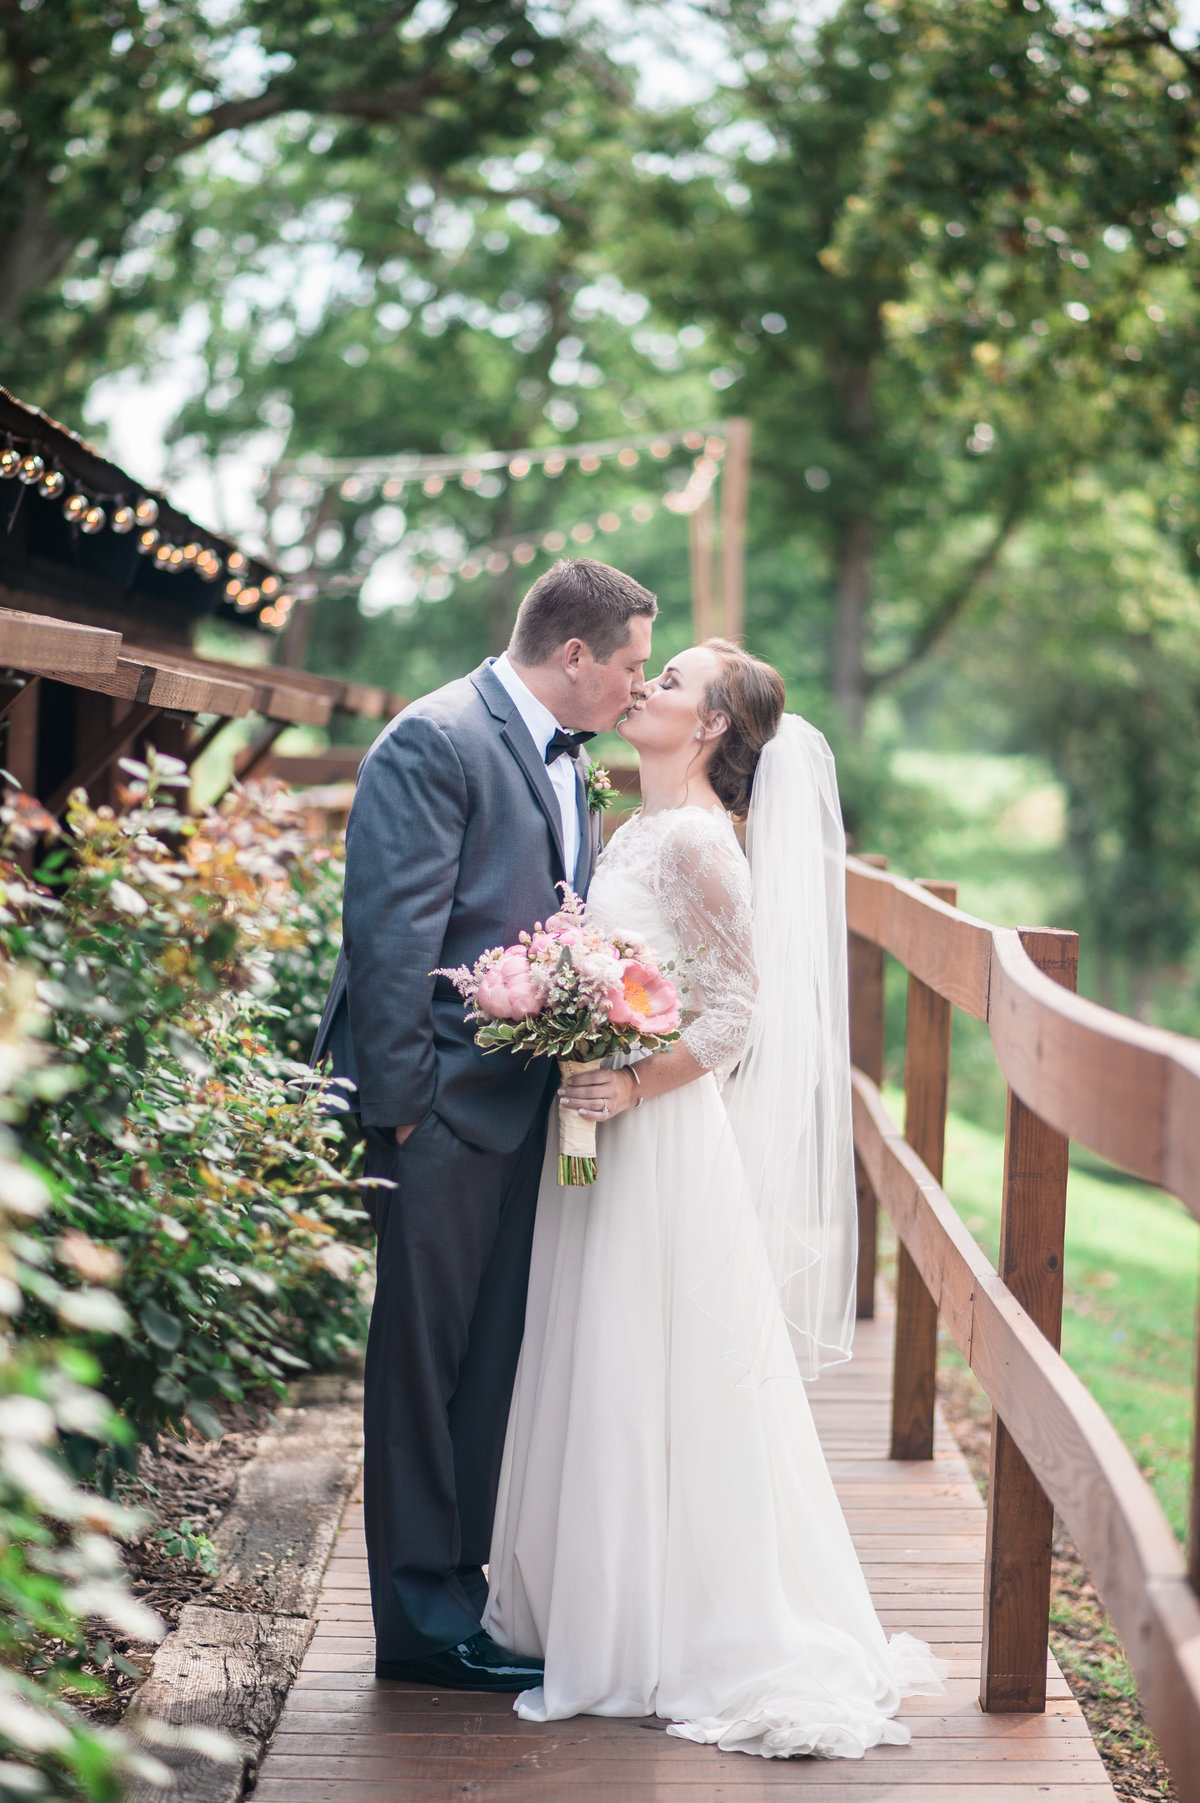 Barn at The Spring rustic Fayetteville wedding  Bride and Groom  kissing in a vineyard taken by Northwest Arkansas Wedding Photographer Christy Simply Bliss Photography